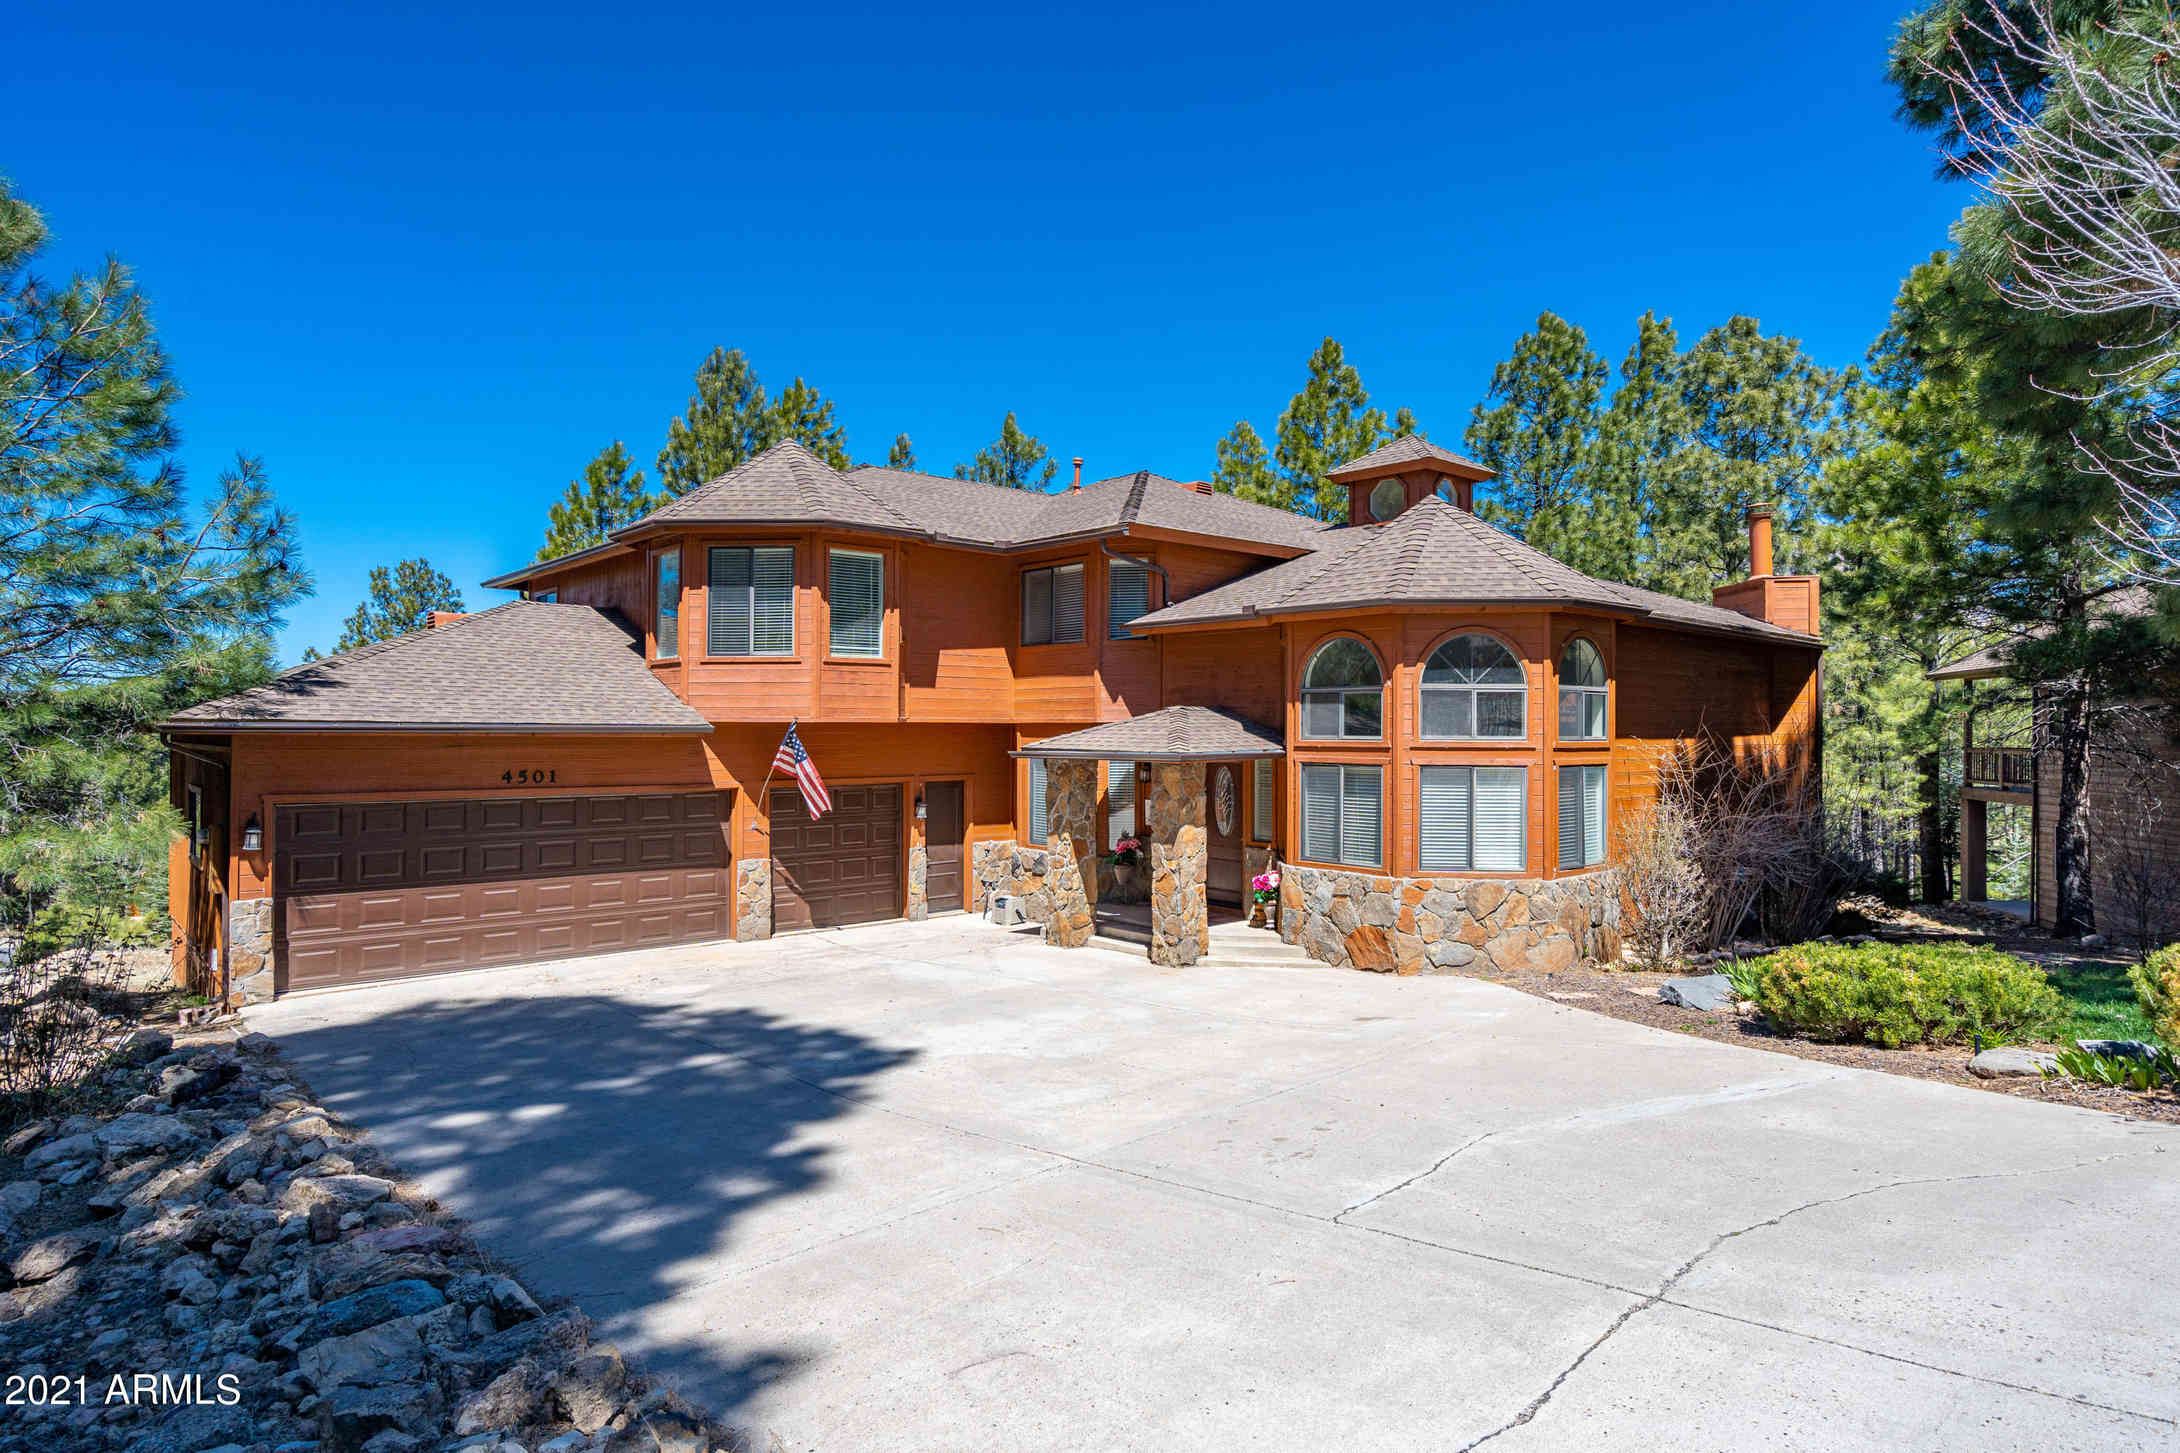 4501 N DORAL Way, Flagstaff, AZ, 86004,